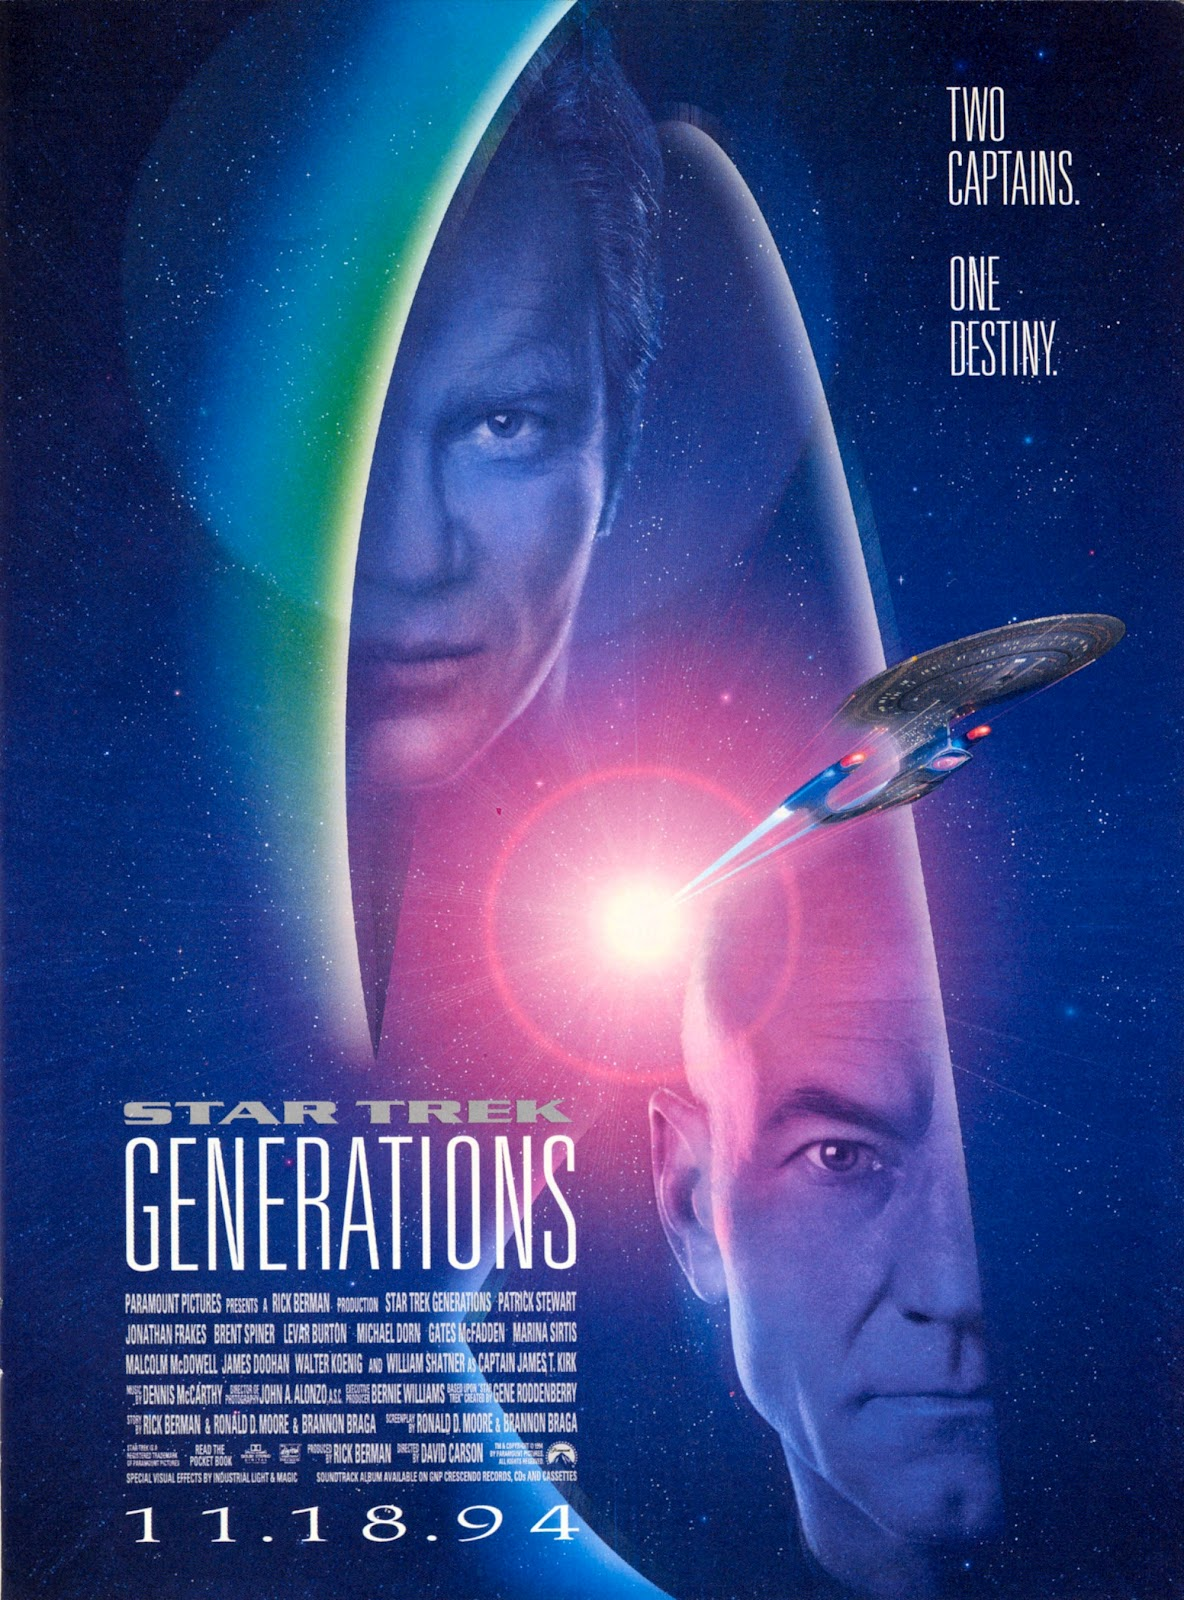 the geeky nerfherder movie poster art star trek movies